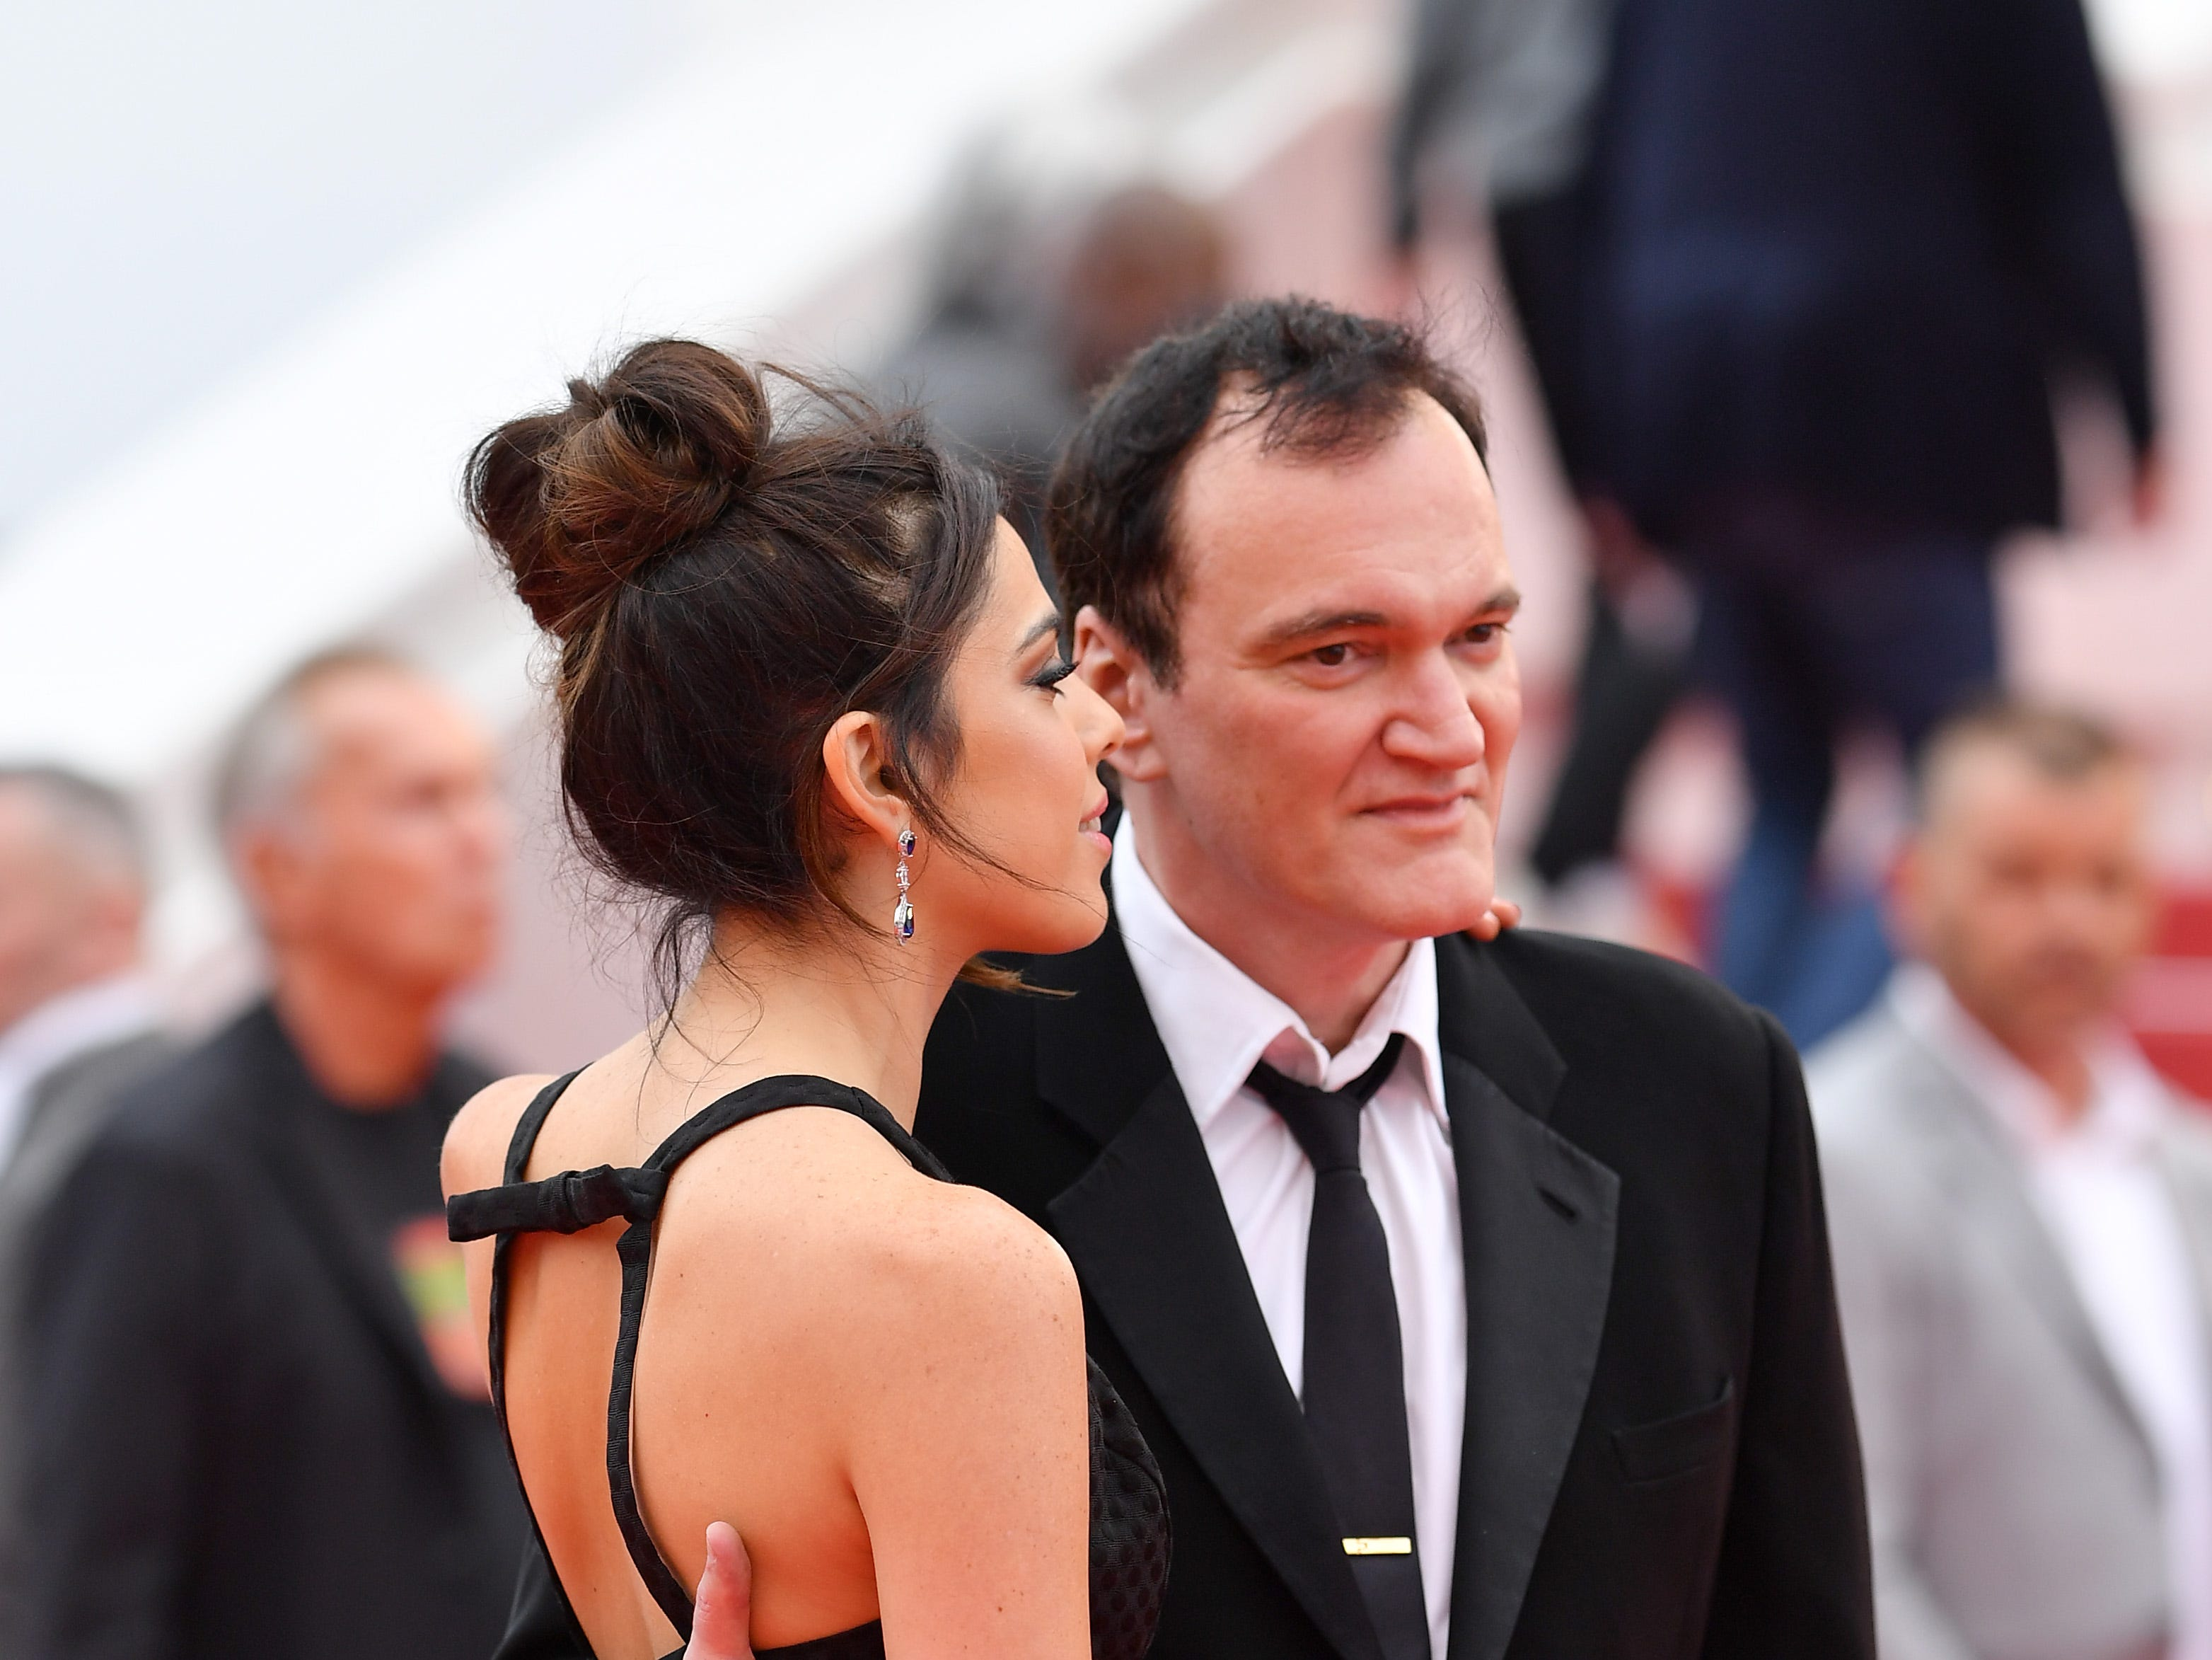 """Quentin Tarantino and Daniela Pick attend the screening of """"The Wild Goose Lake (Nan Fang Che Zhan De Ju Hui/ Le Lac Aux Oies Sauvages)"""" during the 72nd annual Cannes Film Festival on May 18, 2019 in Cannes, France."""